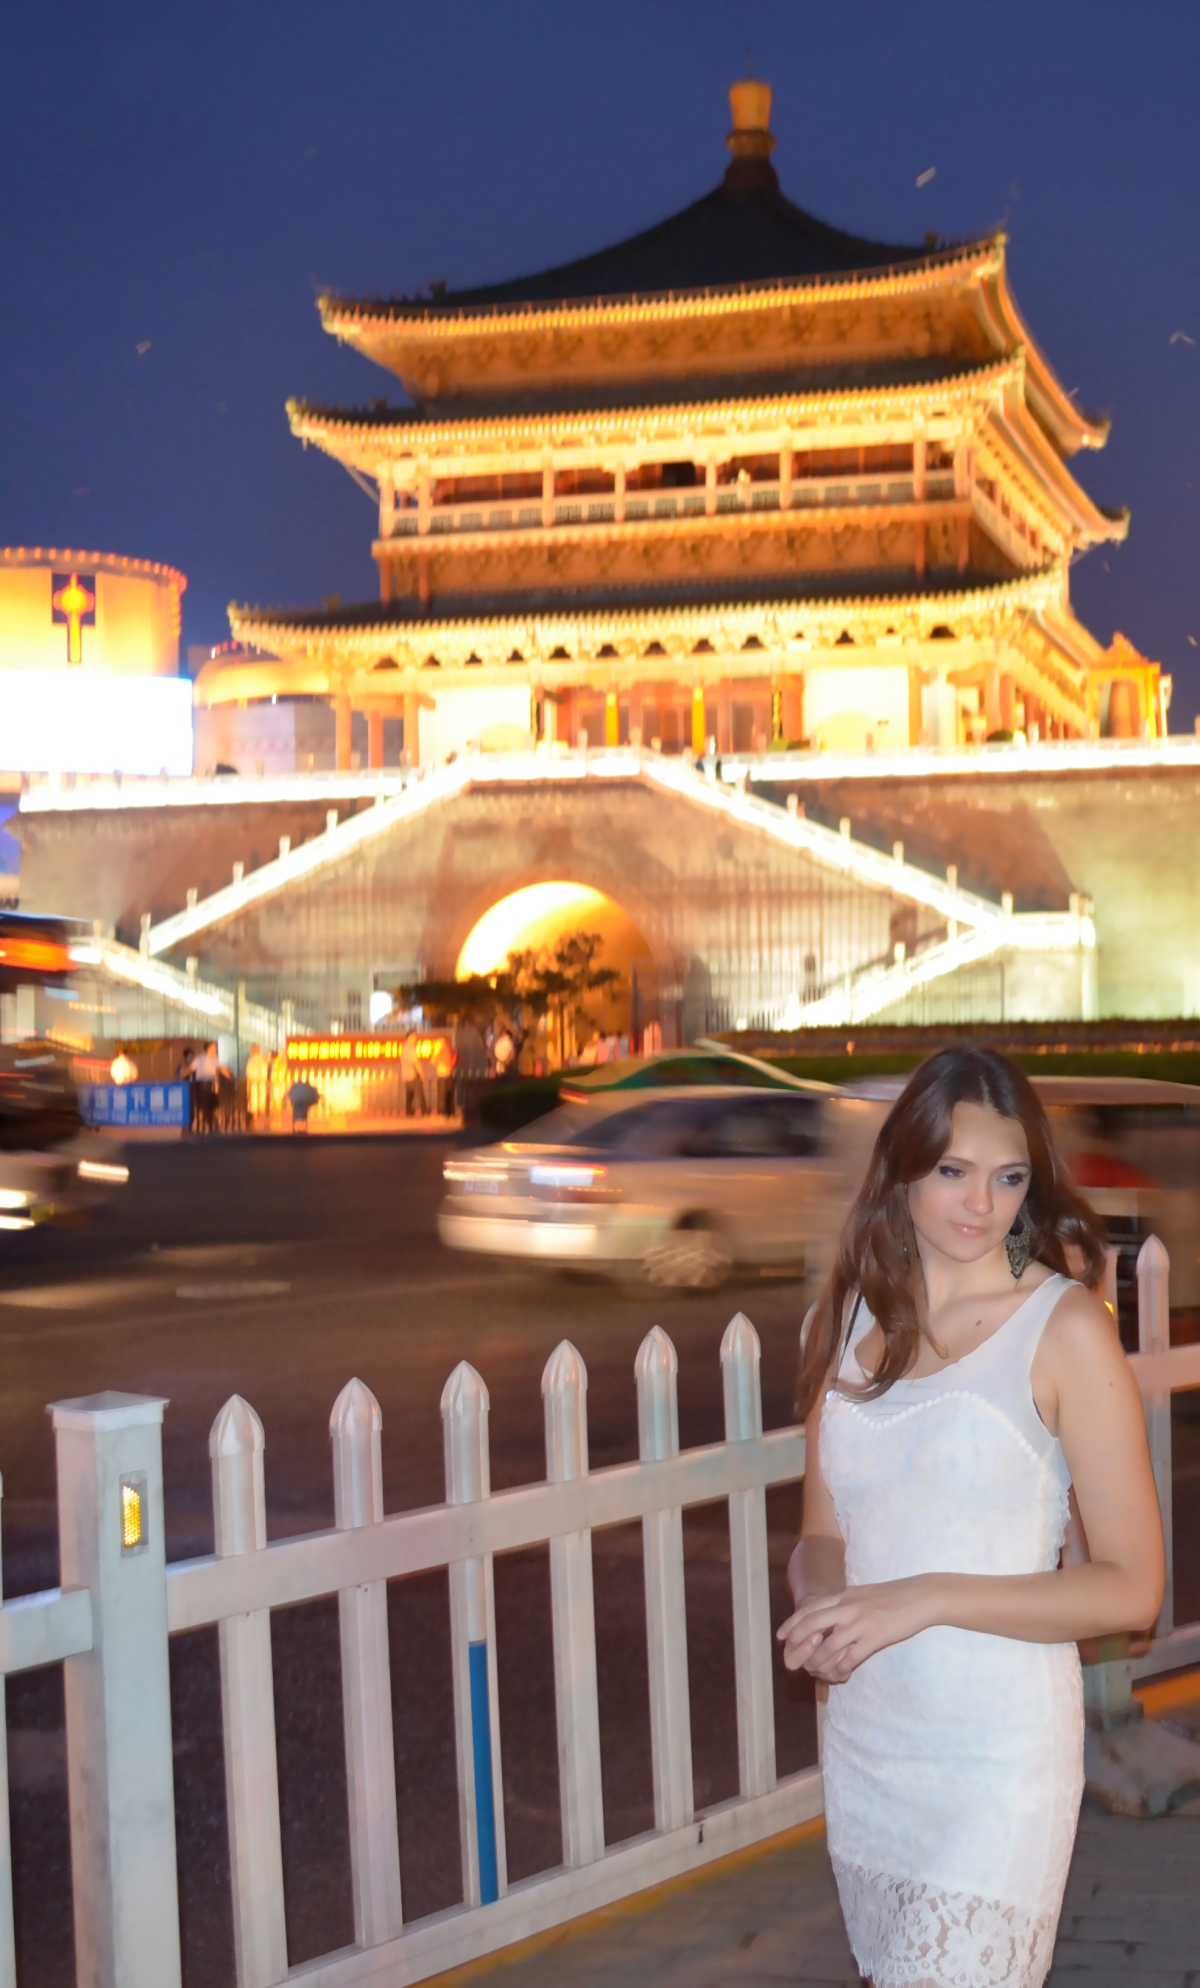 Xi'An a place of Culture, Beauty andSophistication